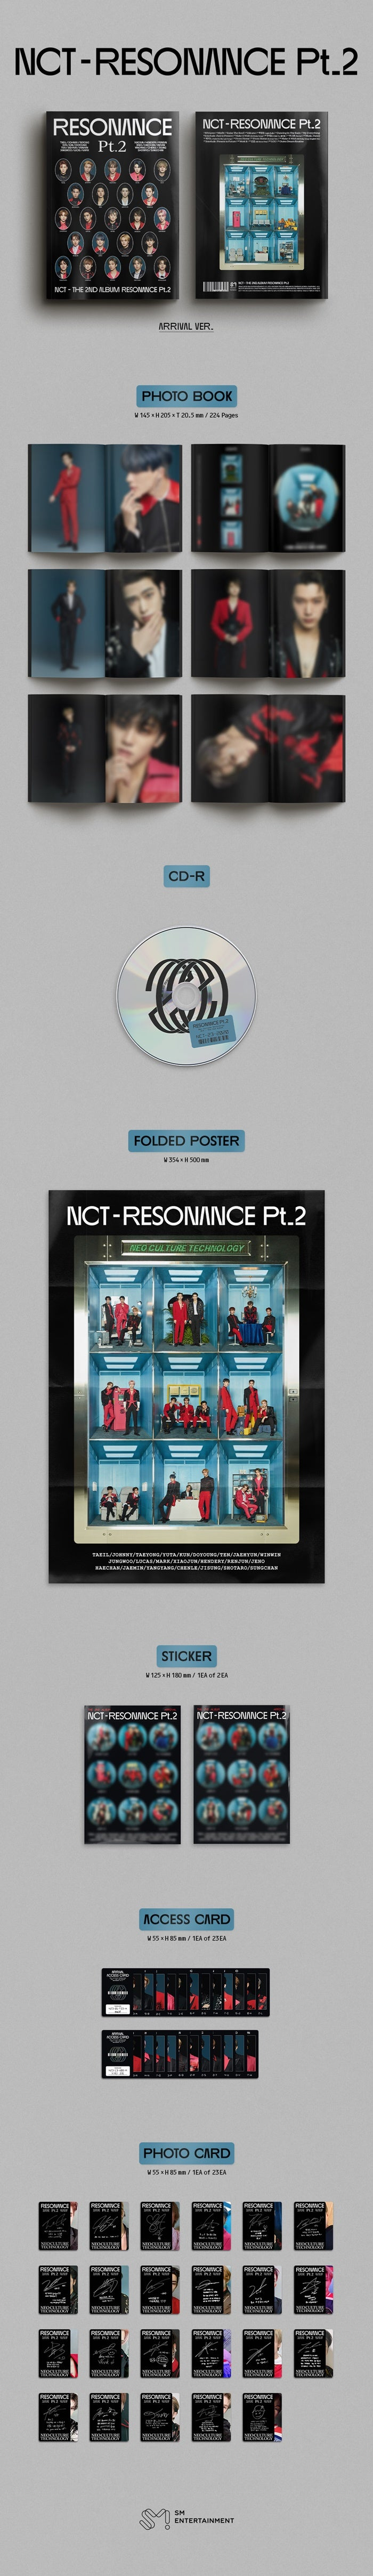 NCT - 2ND OFFICIAL ALBUM [RESONANCE PT.2] (ARRIVAL VER.)